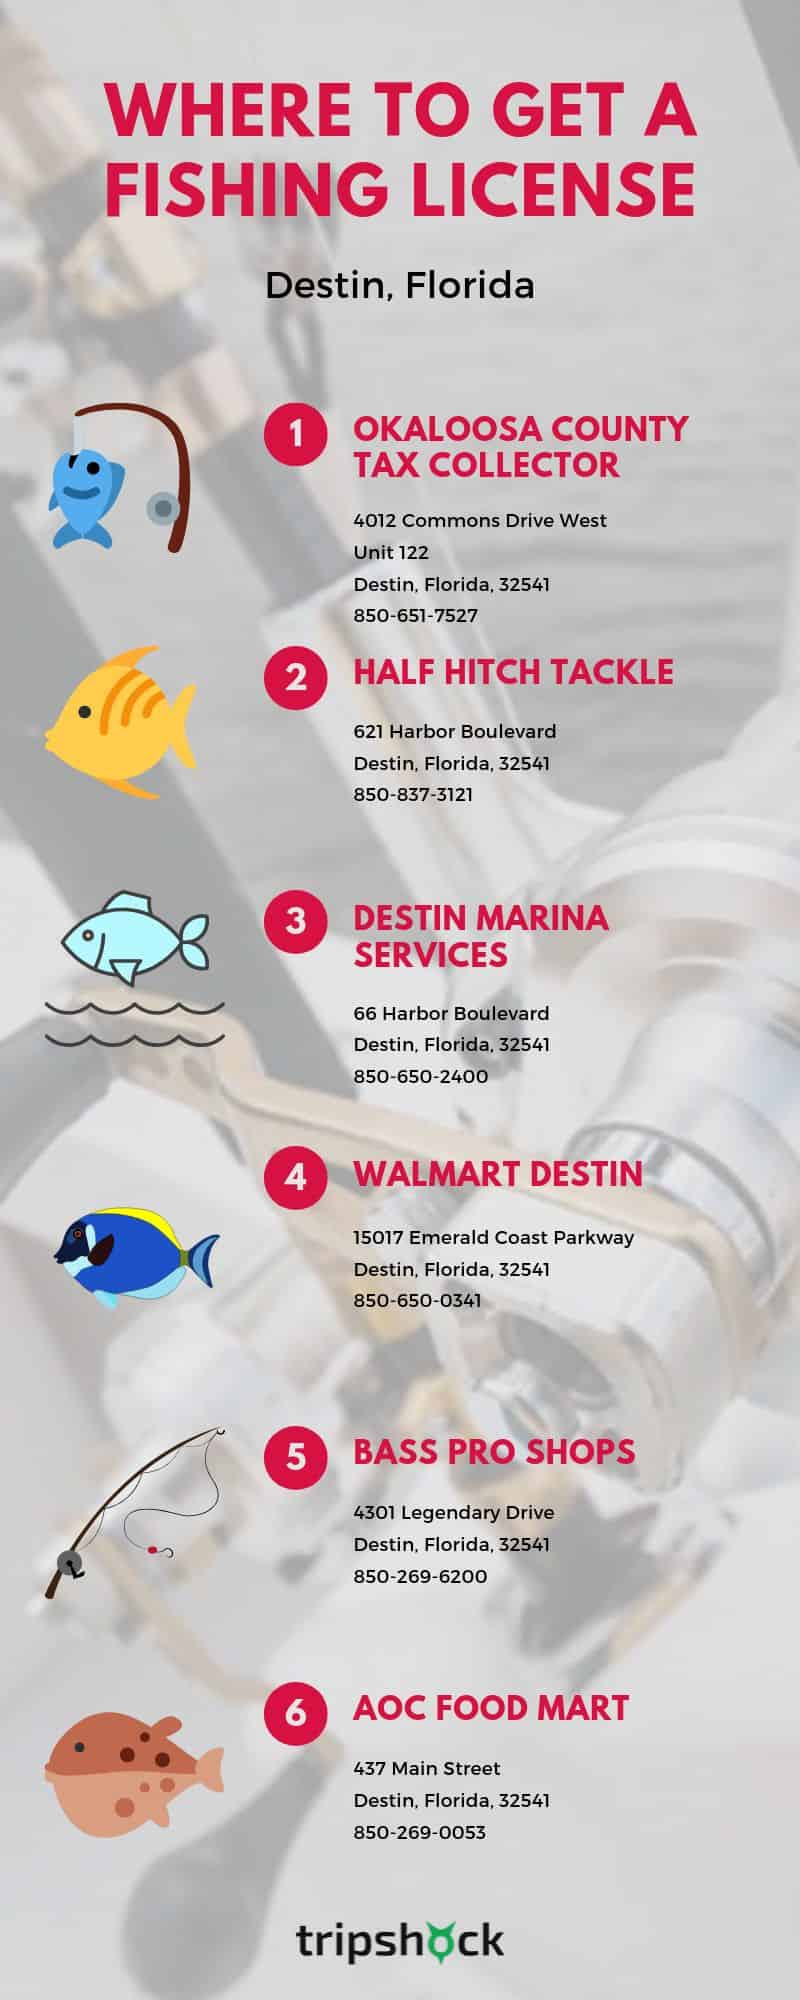 where to get a fishing license in destin florida